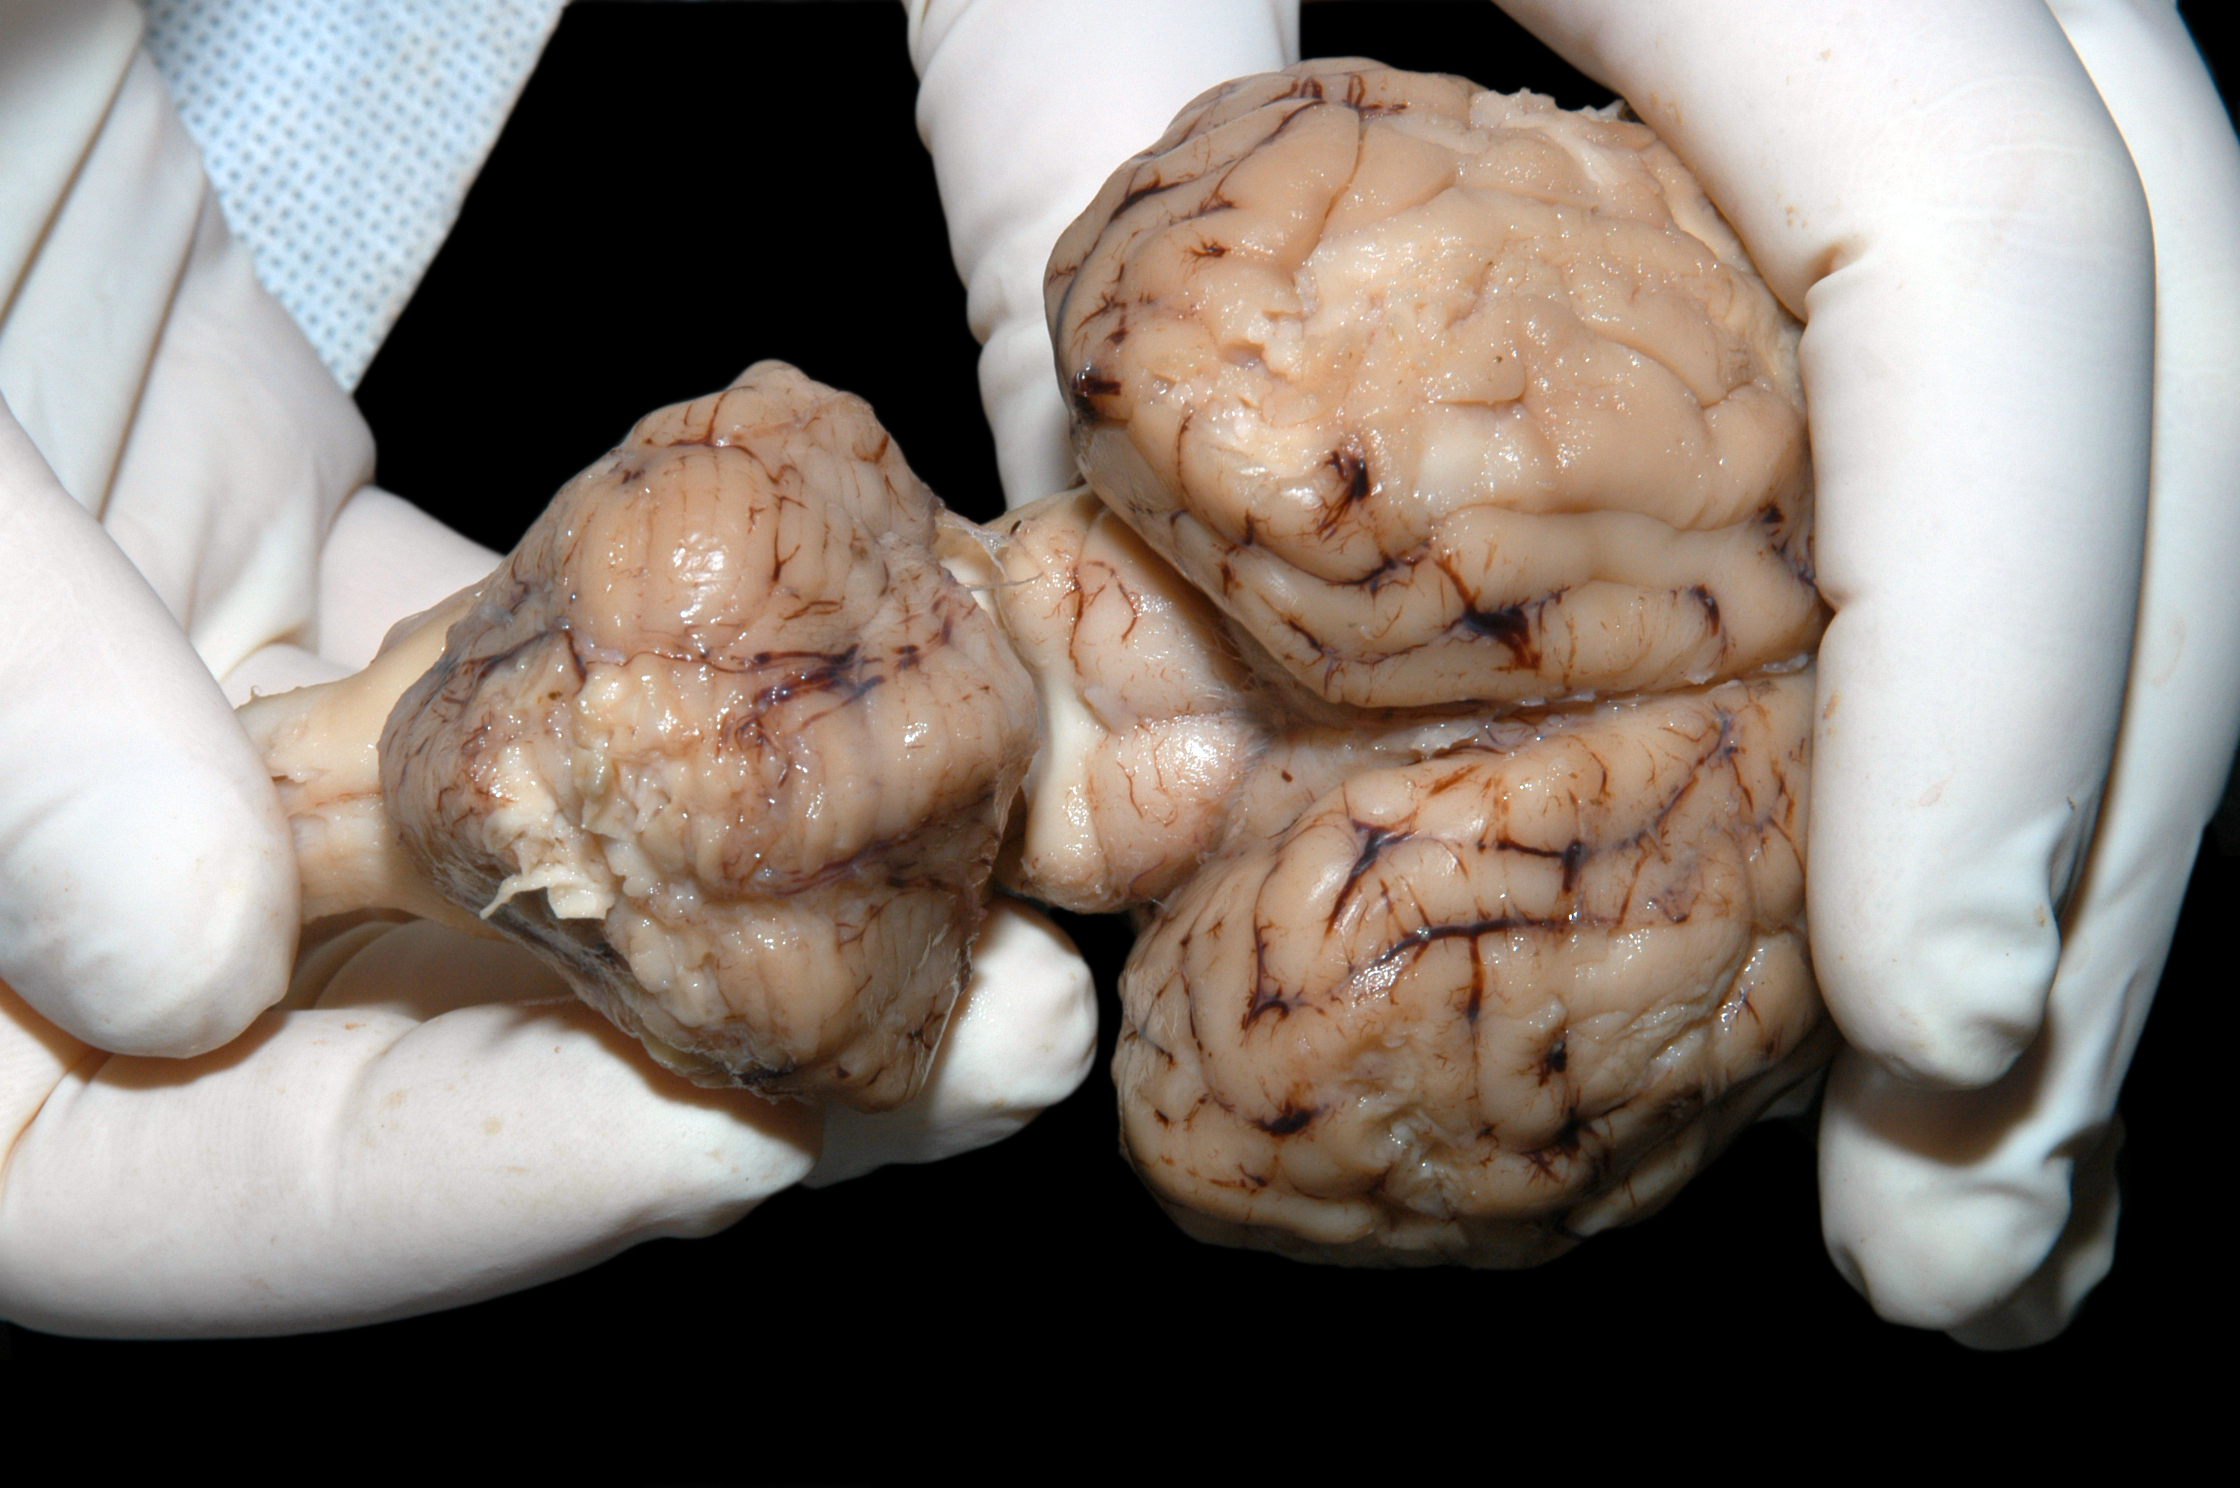 Lab | Sheep brain images | Amherst College